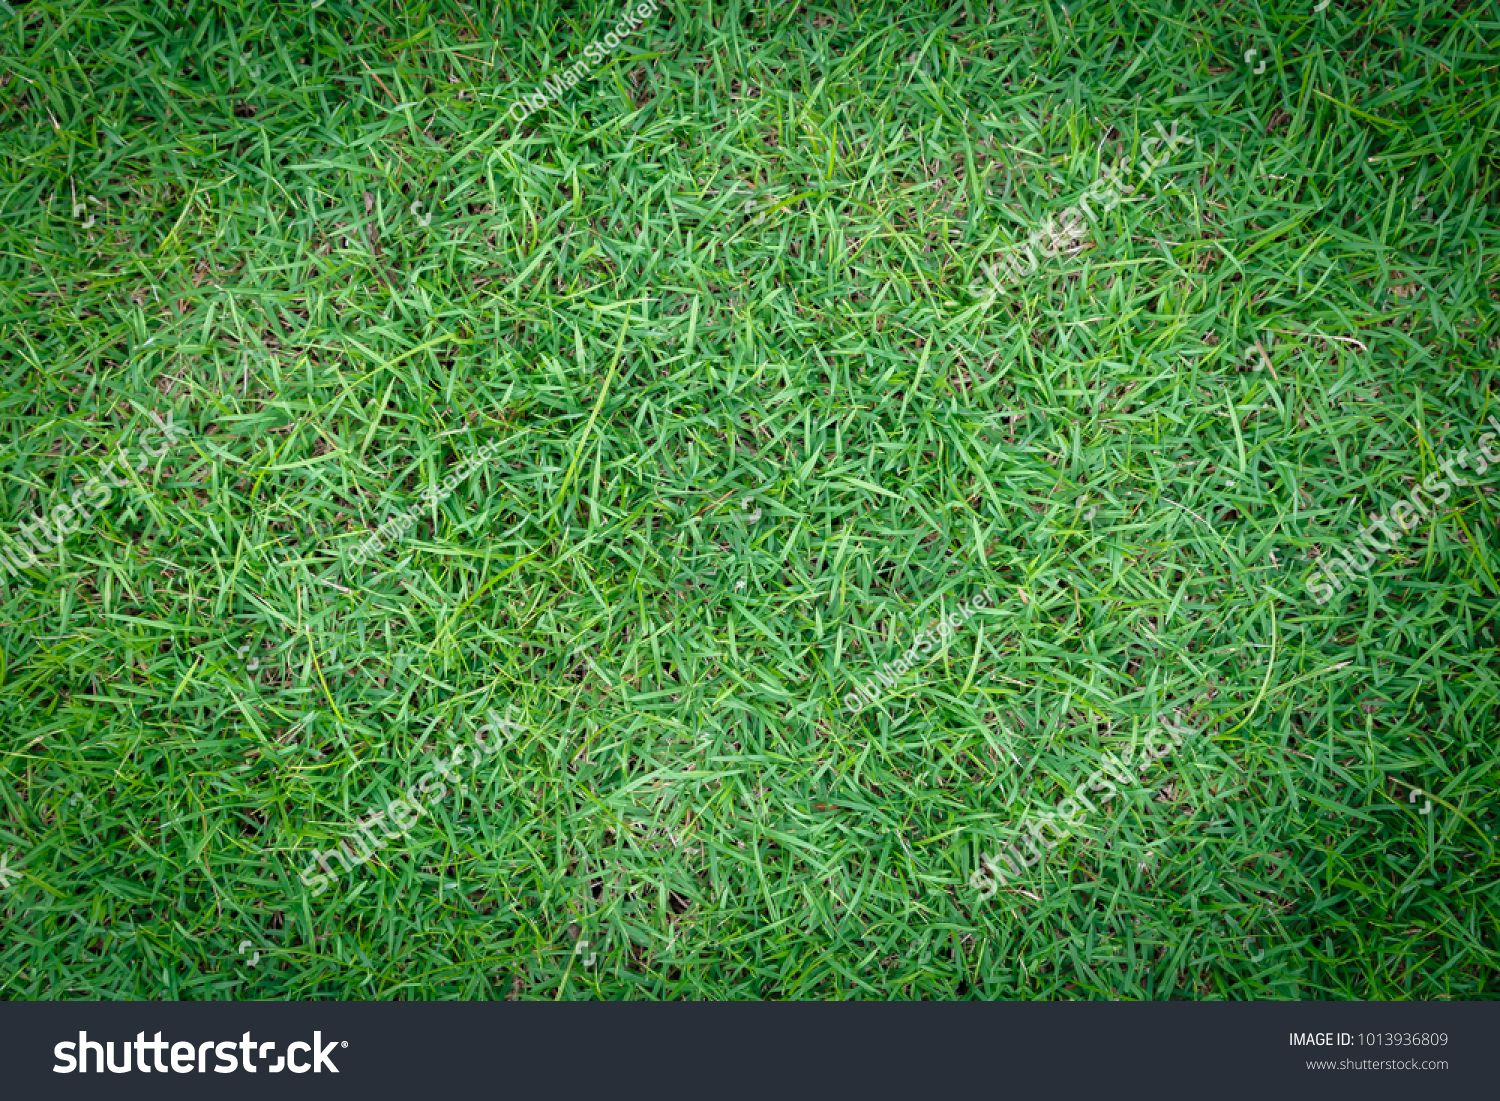 Green Grass Field Background For Soccer And Football Sports Green Lawn Pattern And Texture Background Close Up Image Ad Ad Ba Grass Field Soccer Field